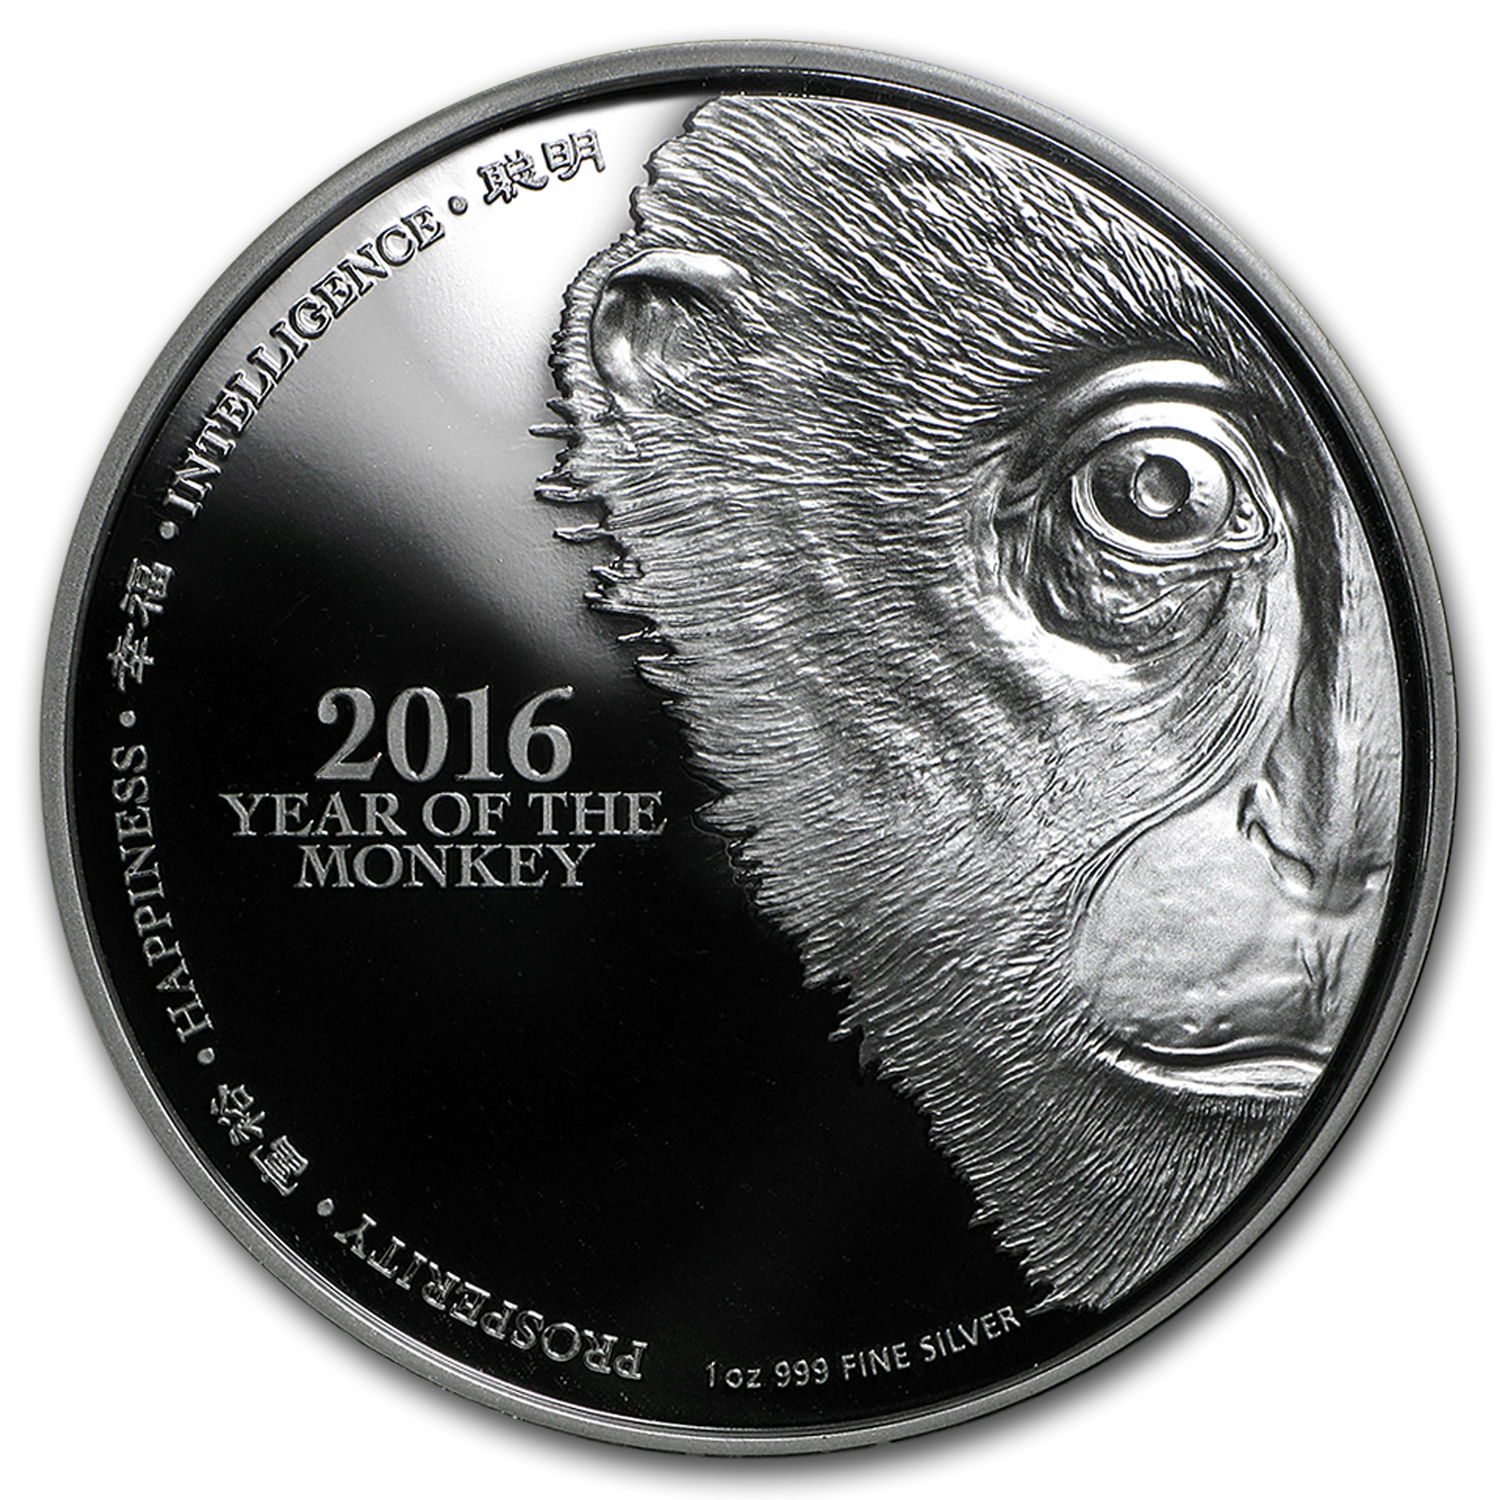 2016 New Zealand 1 oz Proof Silver $2 Lunar Year of the Monkey